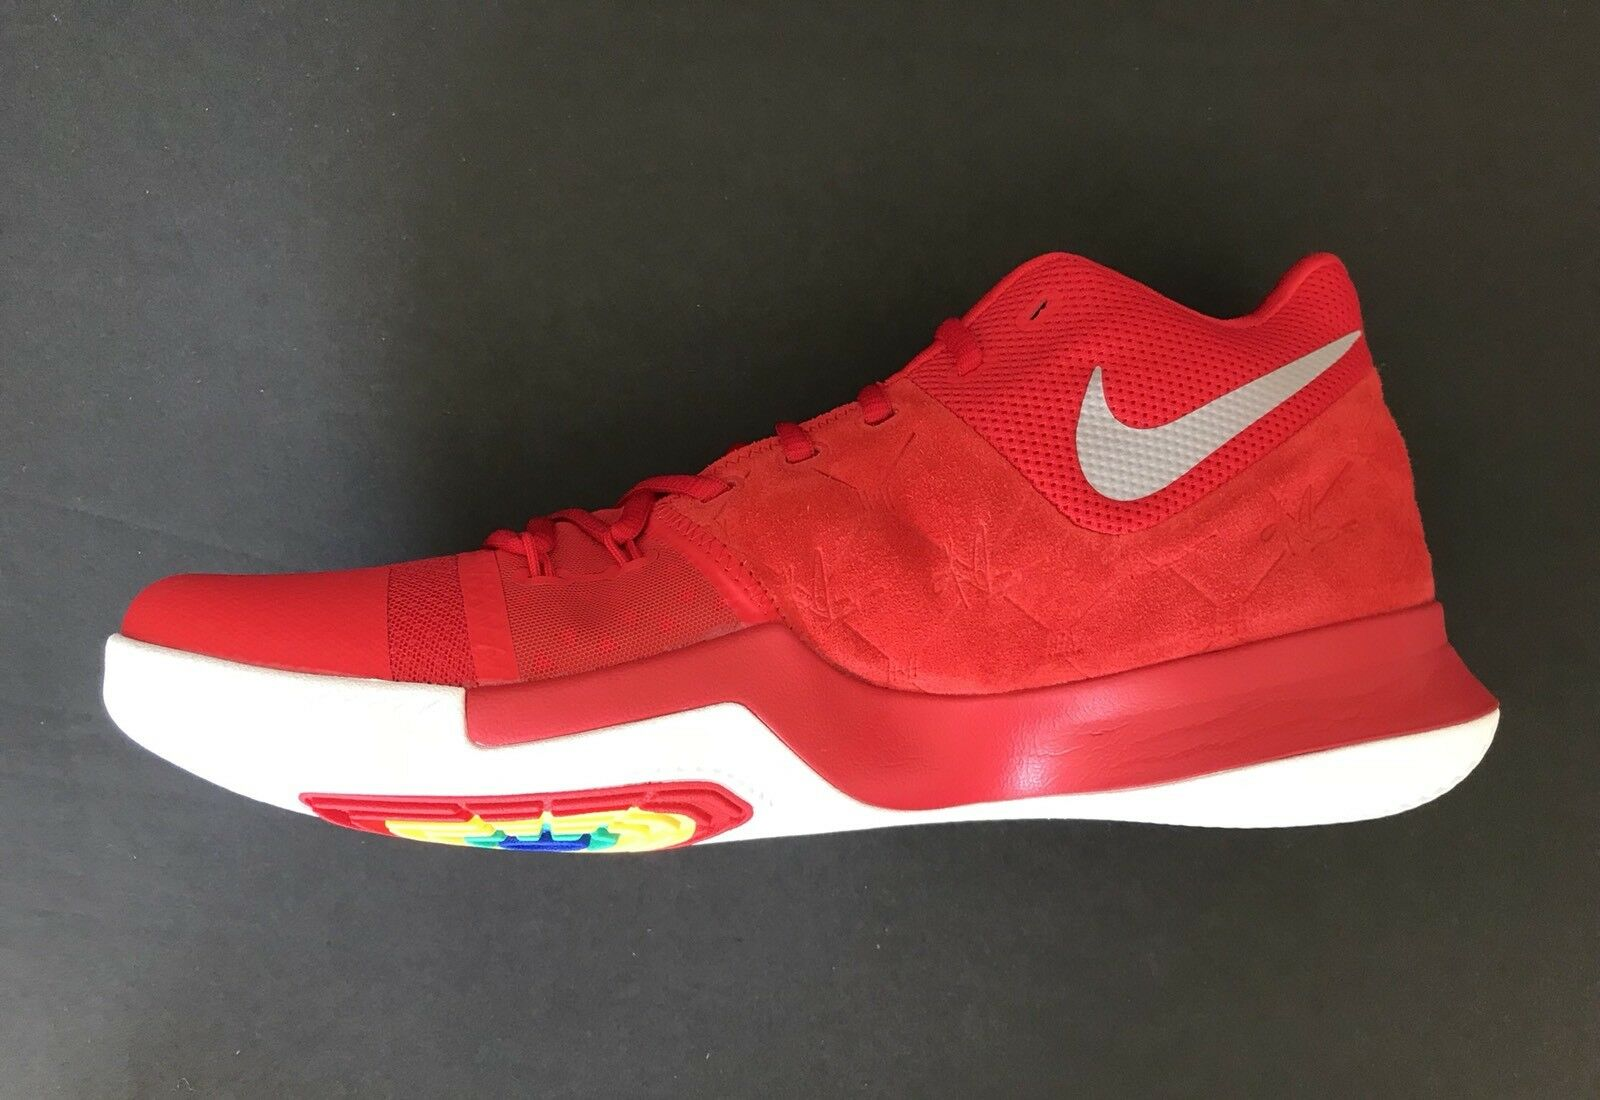 Nike Kyrie 3 University Red Suede Basketball Basketball Basketball Shoes 852395-601 Size Men's 12 US 9b857f